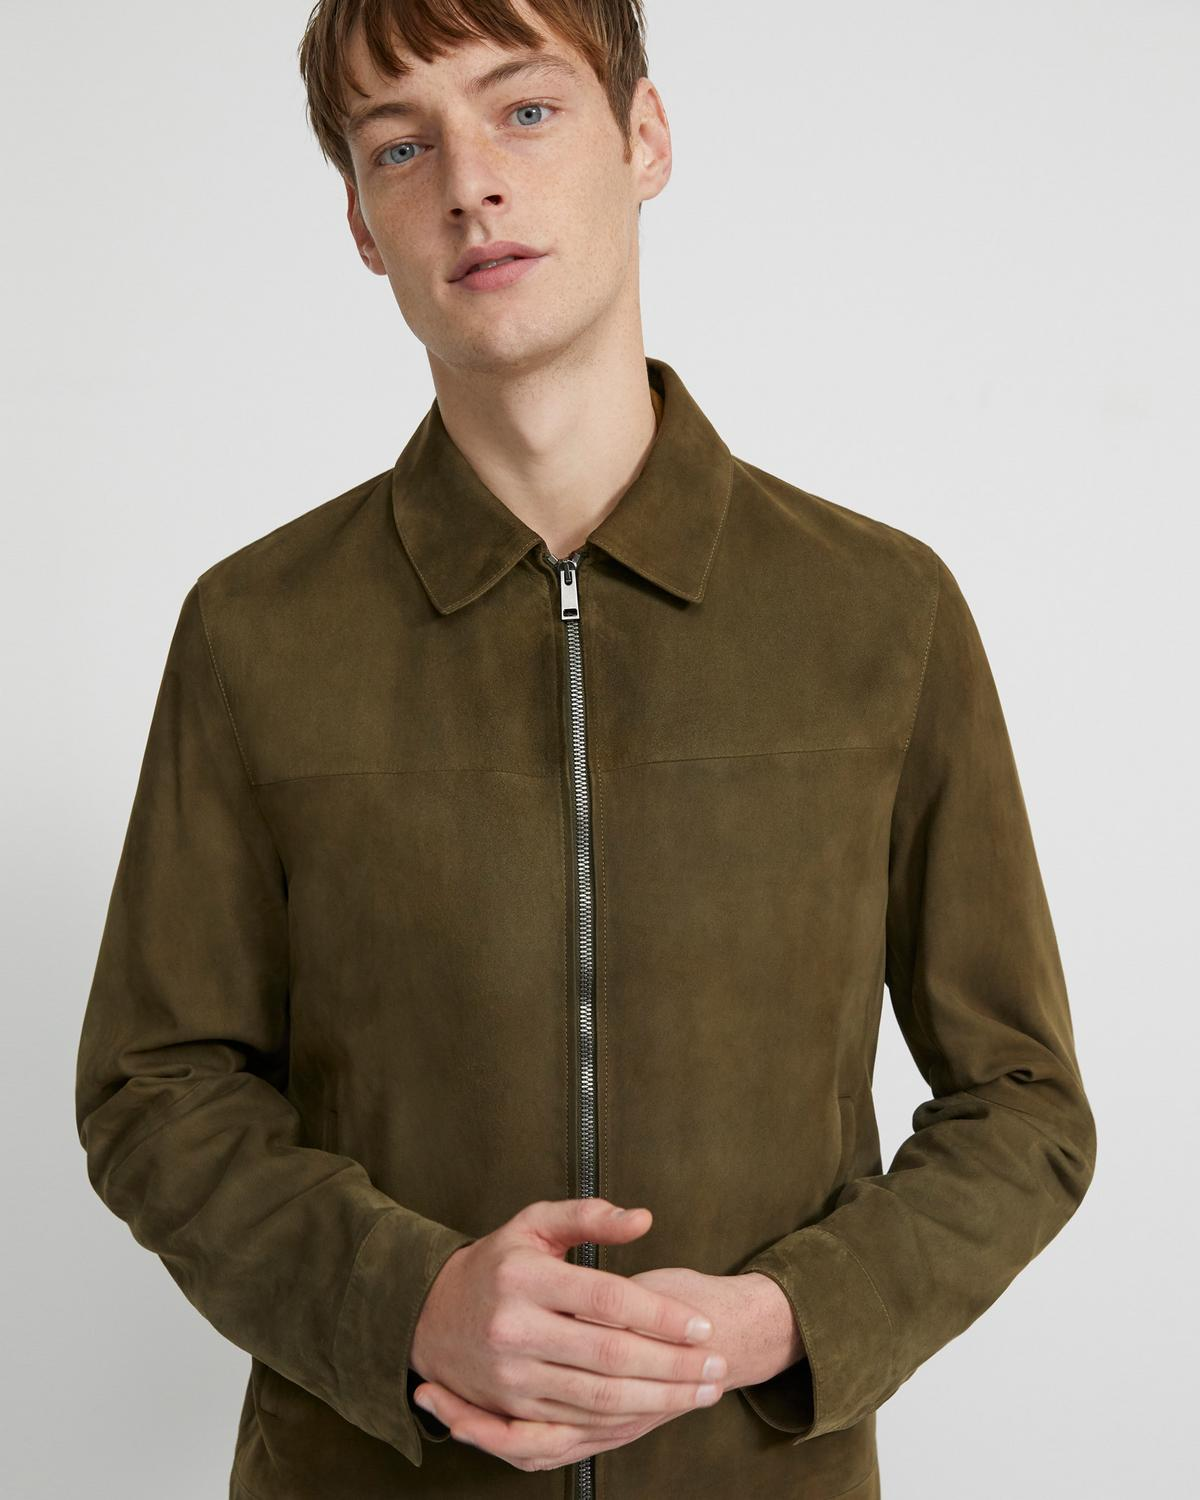 Zip Jacket in Suede